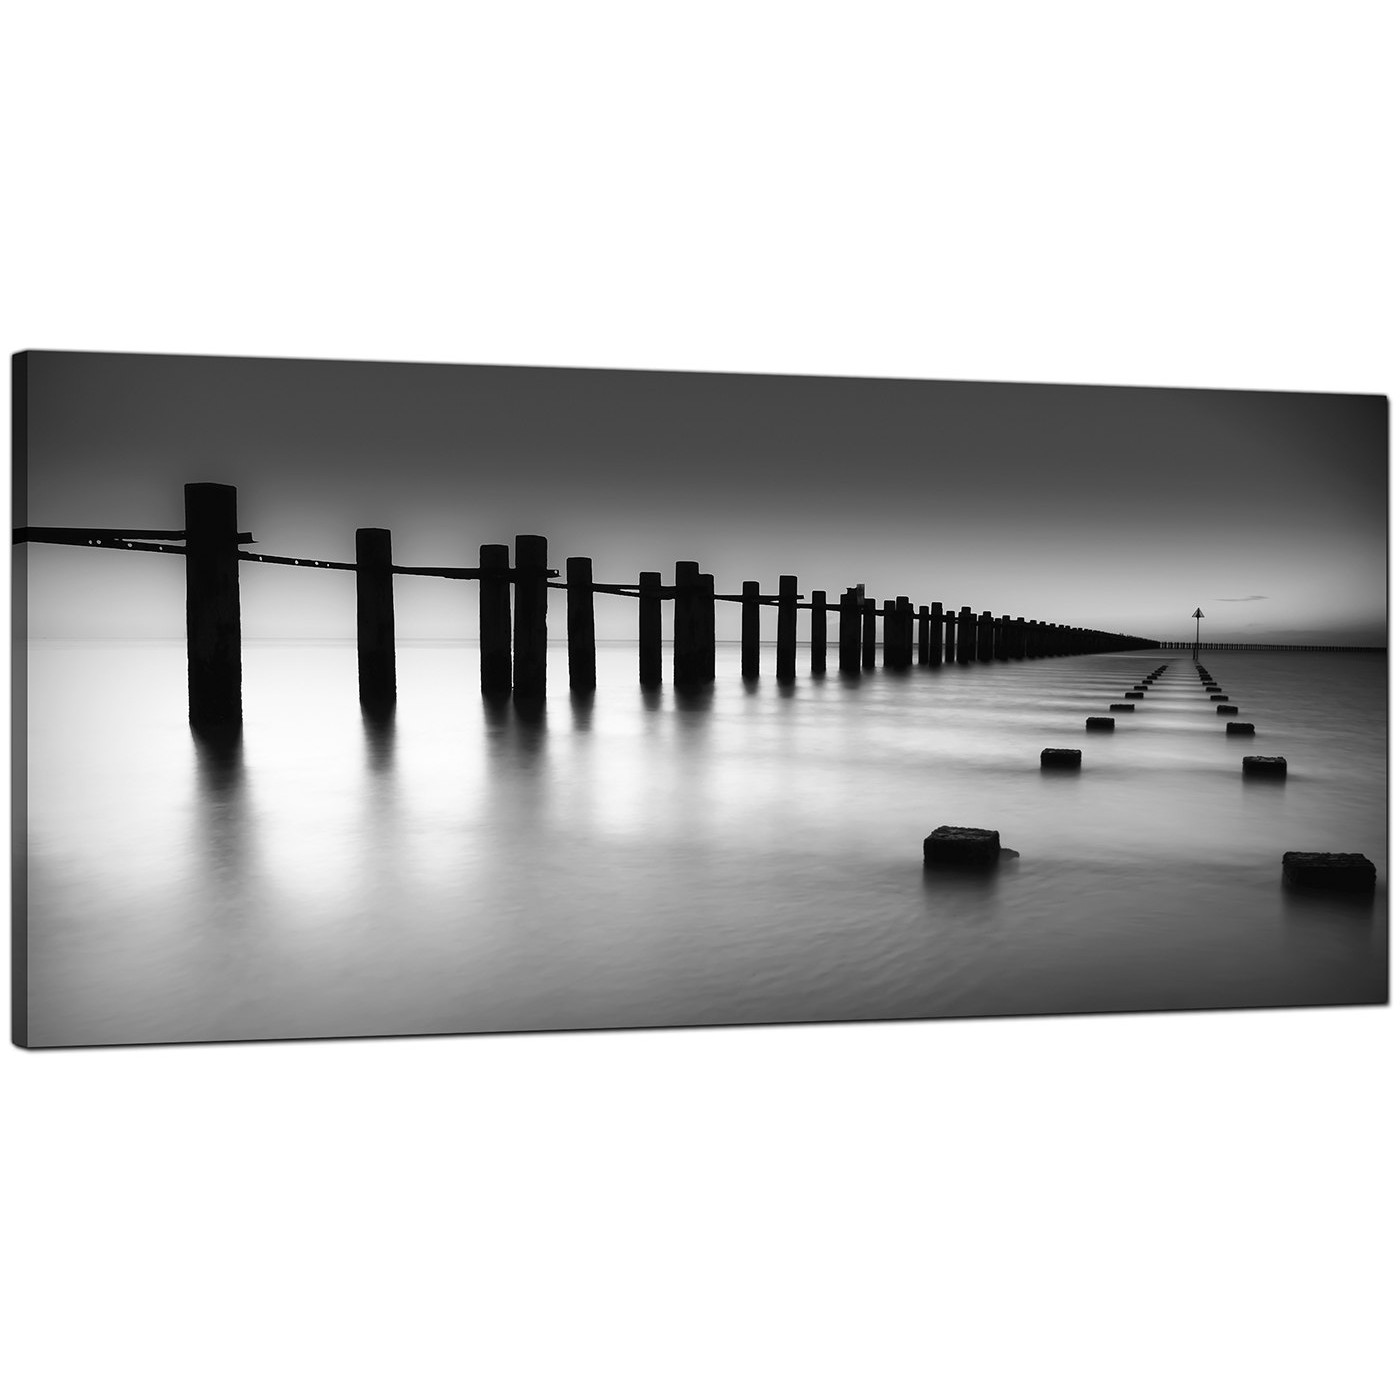 Display Gallery Item 4; Black-White Cheap Large Canvas of Landscape Display Gallery Item 5  sc 1 st  Wallfillers & Modern Black and White Canvas Art of the Sea